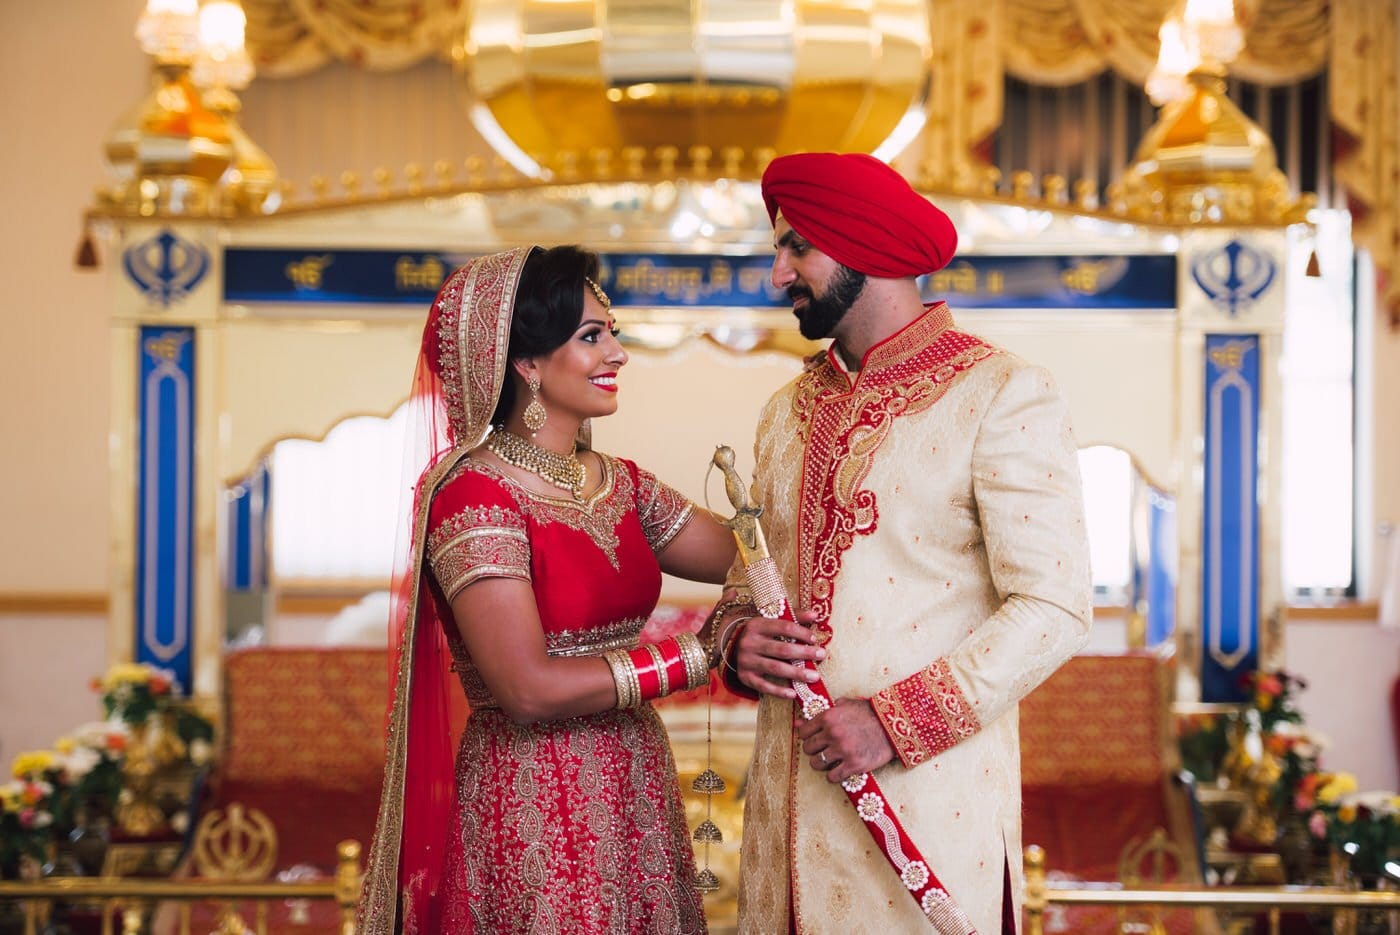 Sikh Wedding Photography and Videography at Supreme Banqueting Suite // Rose & Jag